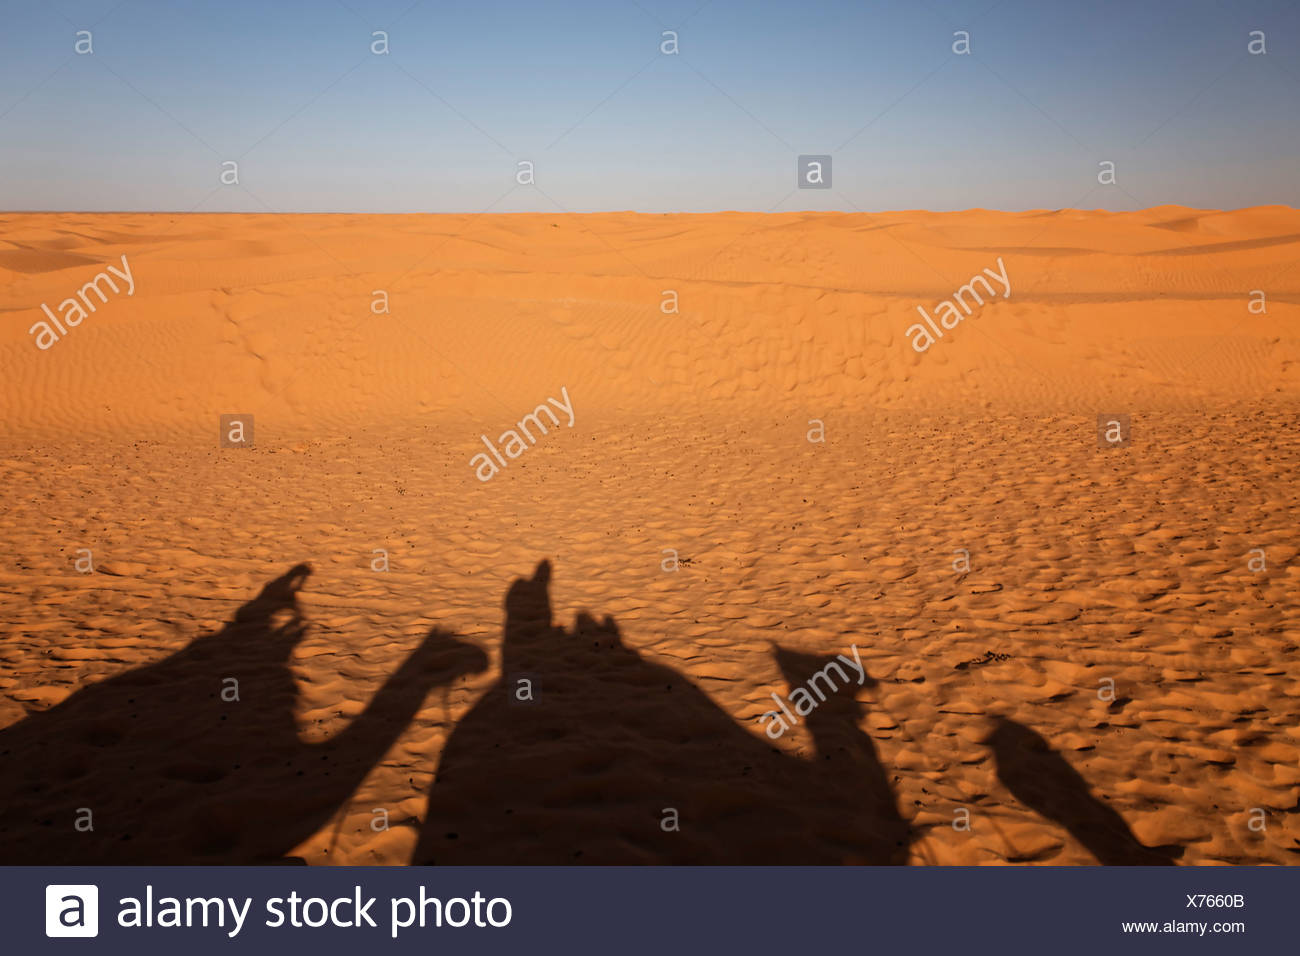 Africa, North Africa, Tunesia, Maghreb, Sahara near Ksar Ghilane, Shadows of a caravan with dromedaries and tourists on sand - Stock Image